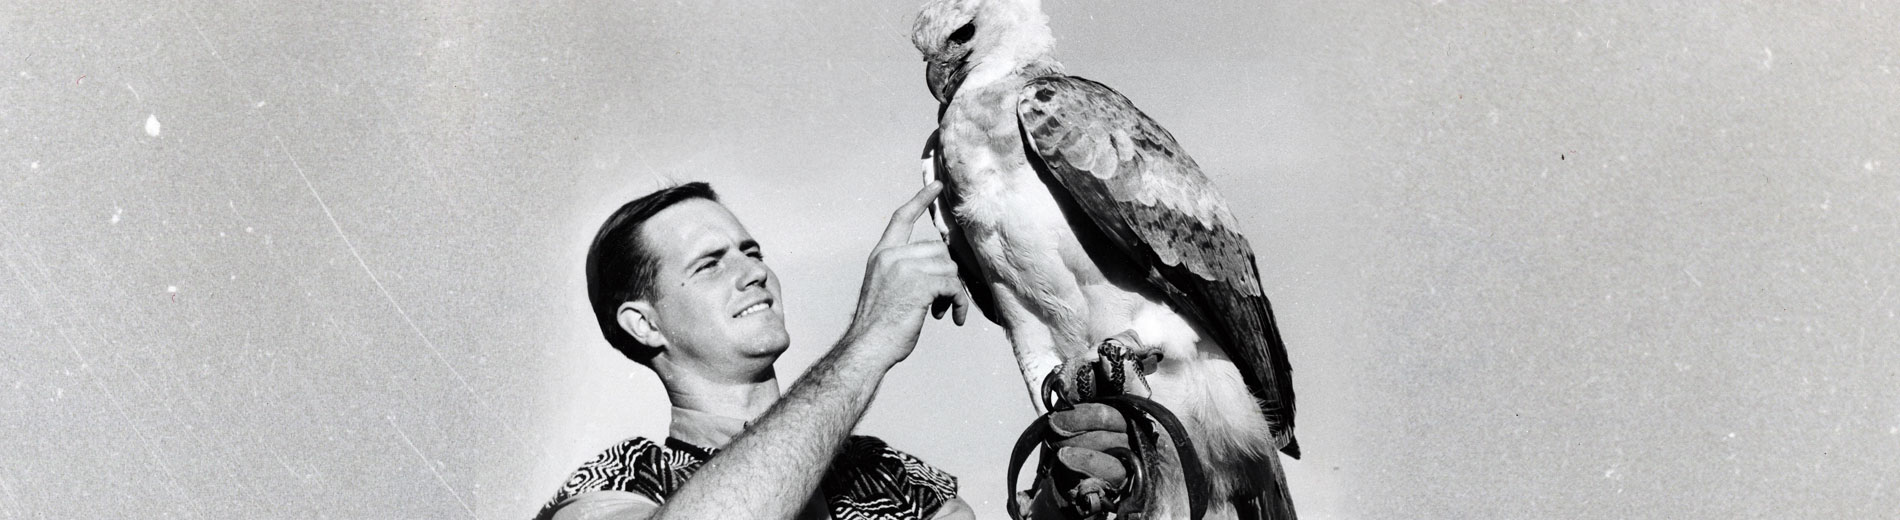 Jim Fowler handling eagle